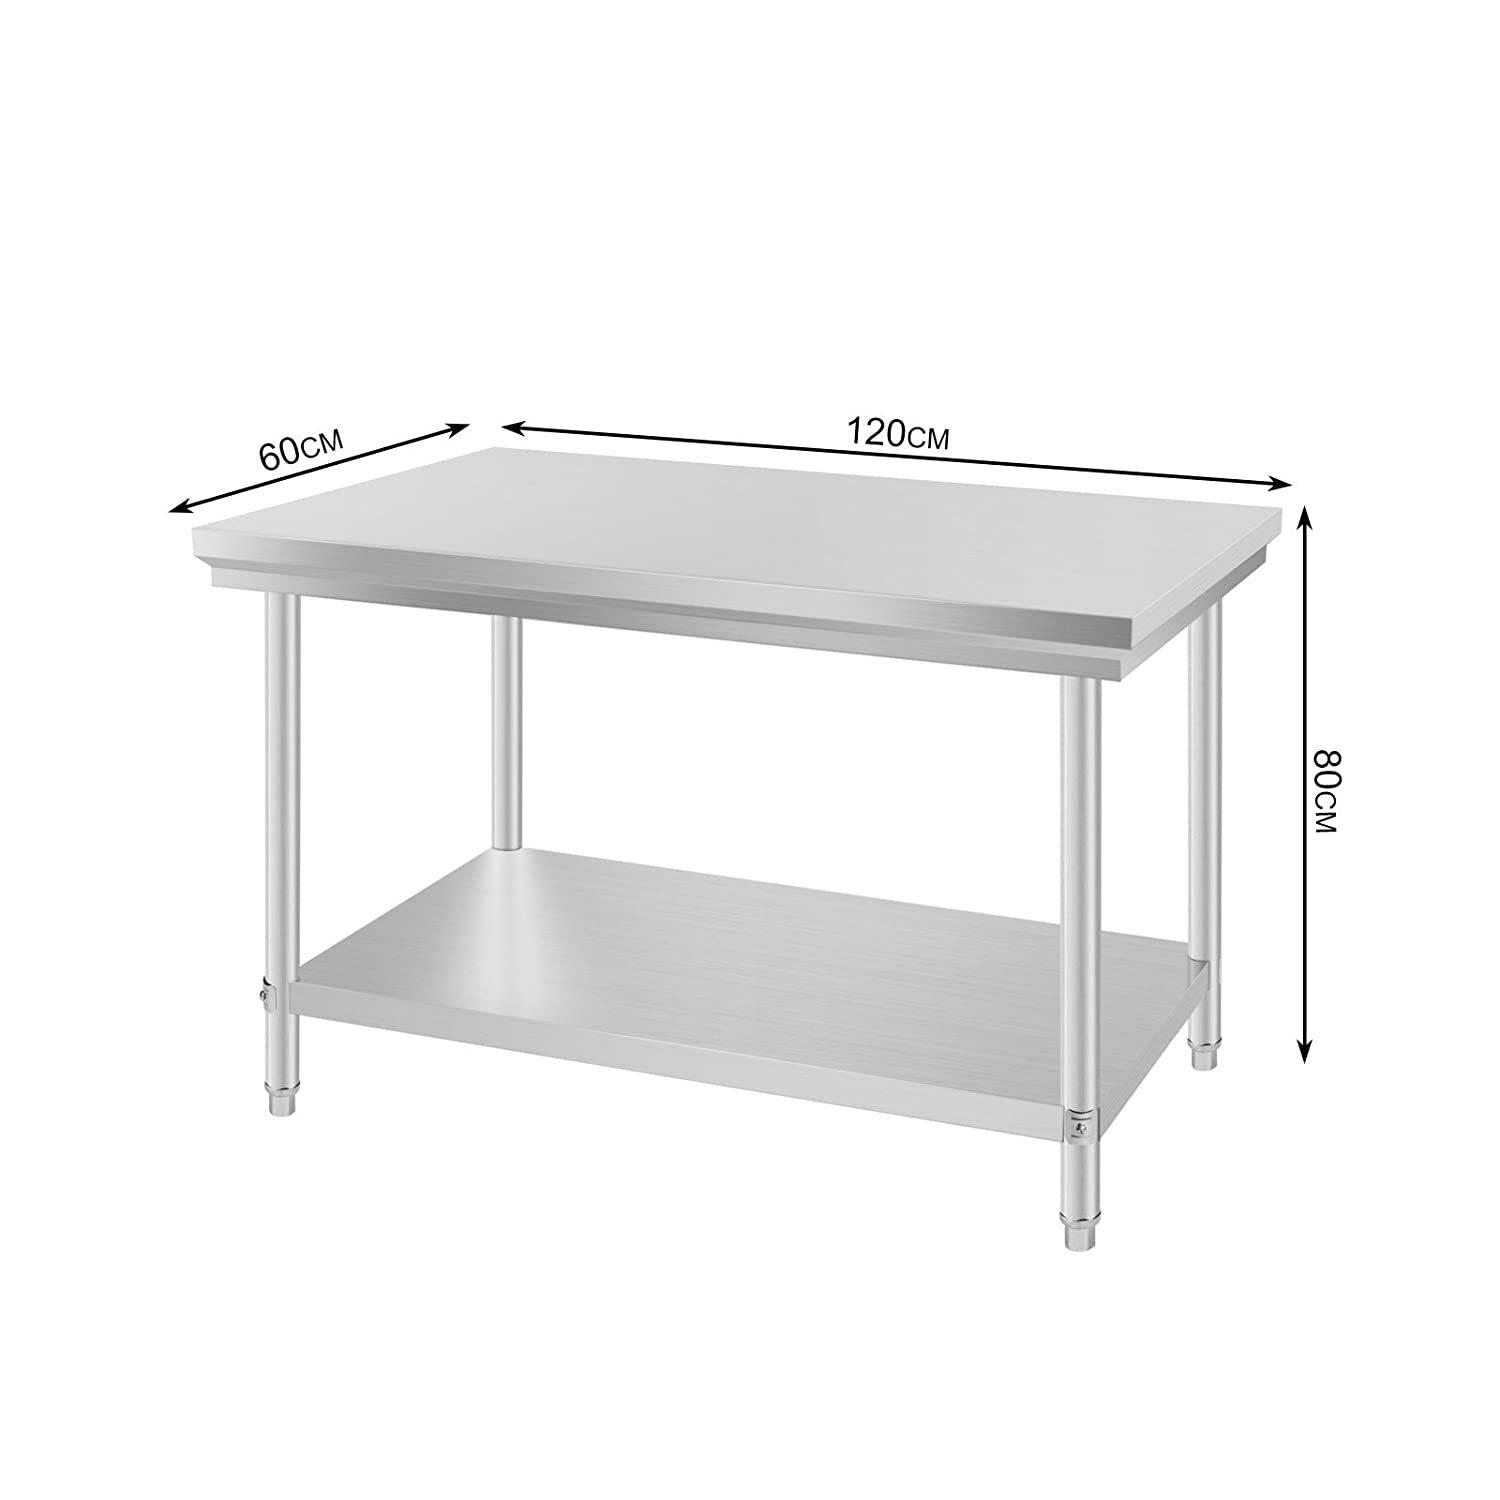 Stainless Steel Kitchen Work Table Gallery - Bar Height Dining Table Set